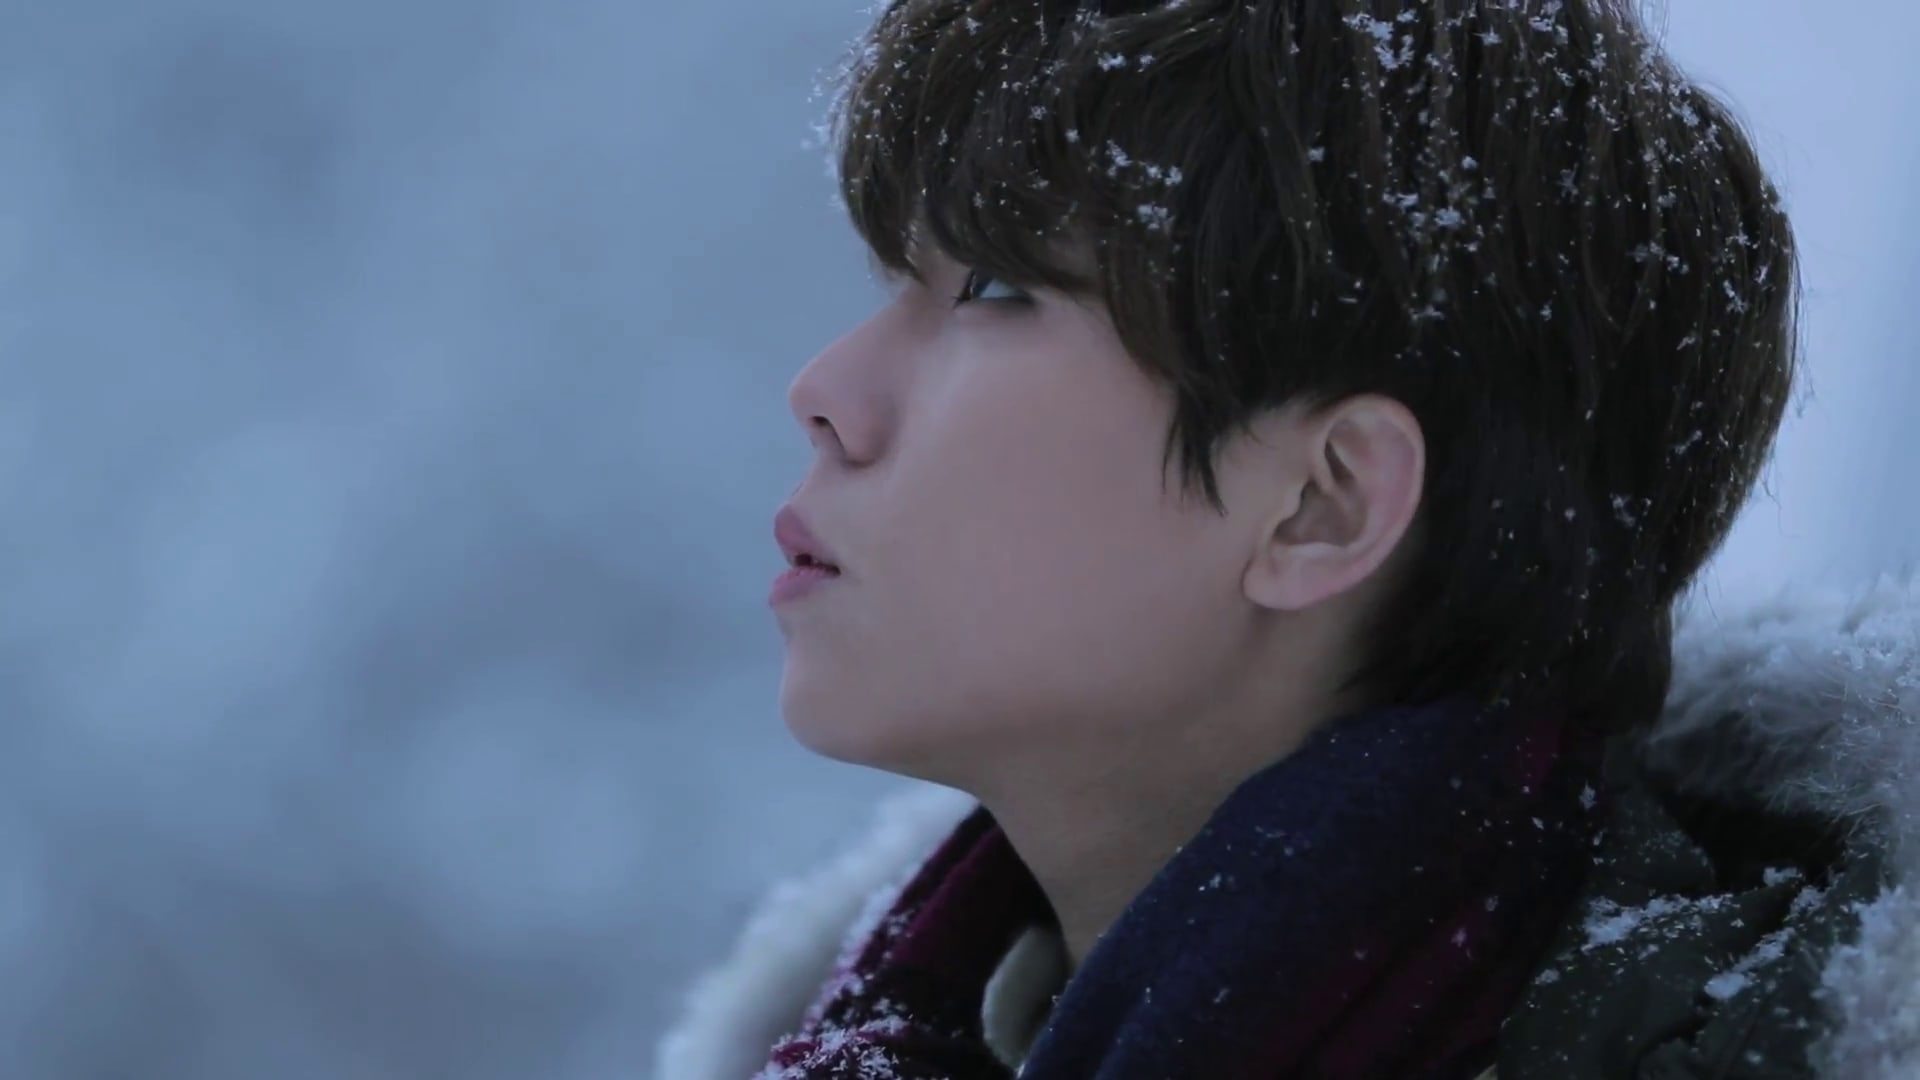 """Watch: Jung Seung Hwan Sings Of """"The Snowman"""" In MV For New Track With Lyrics By IU"""